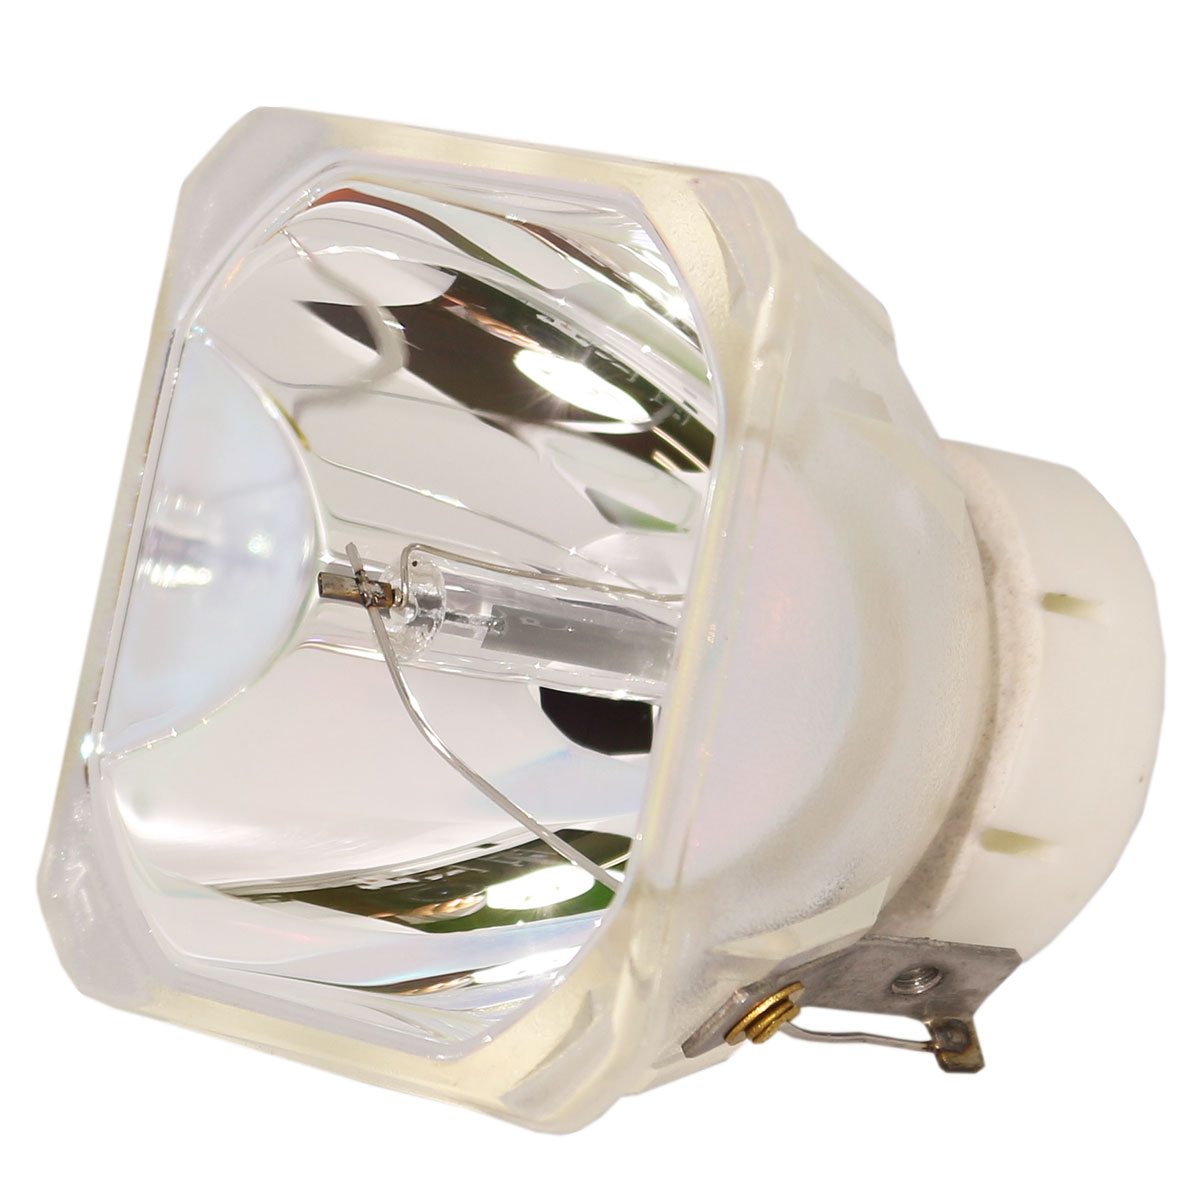 Lutema Economy Bulb for Geha compact 238W Projector (Lamp with Housing) - image 5 of 5